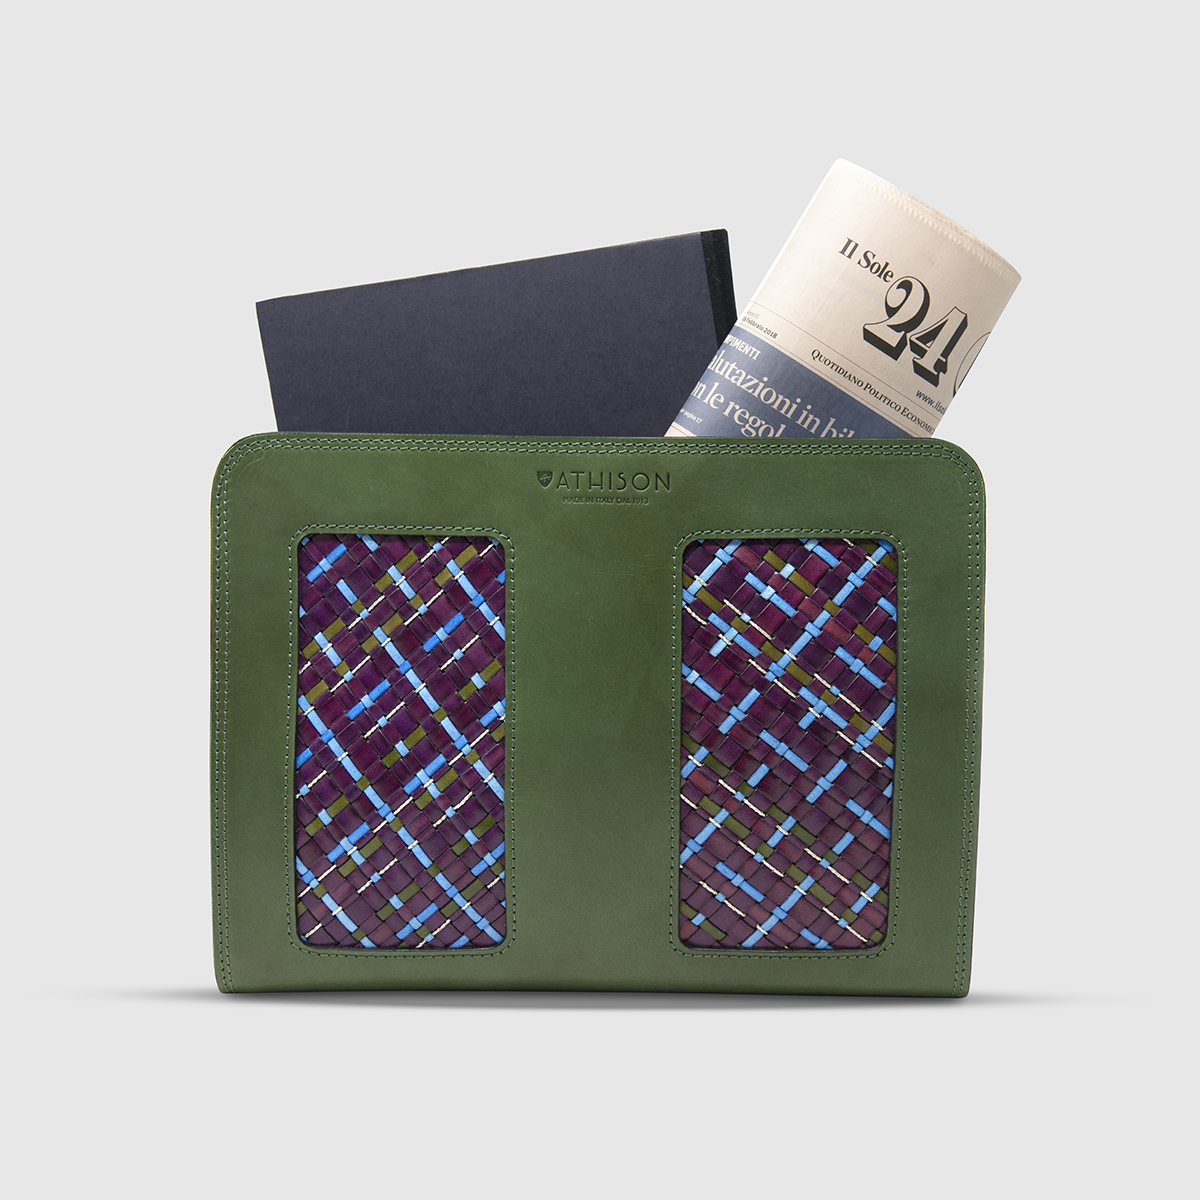 Athison Leather Pouch